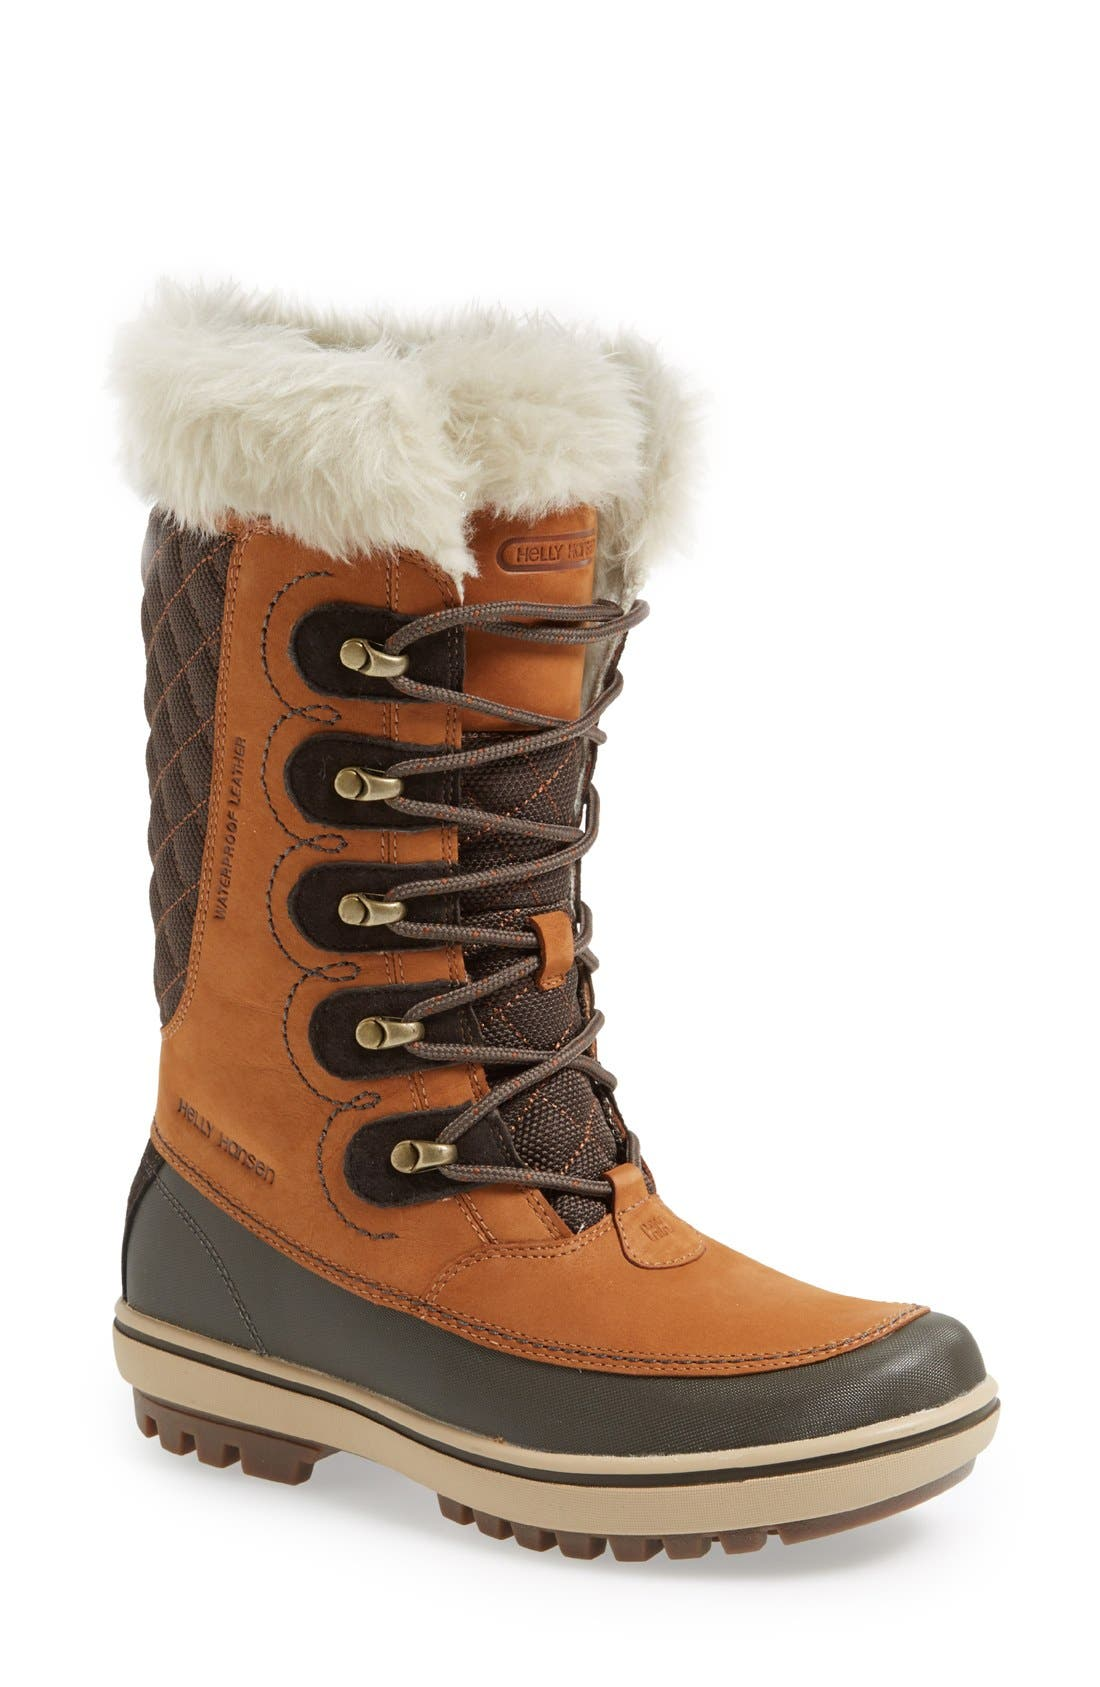 HELLY HANSEN 'Garibaldi' Waterproof Snow Boot